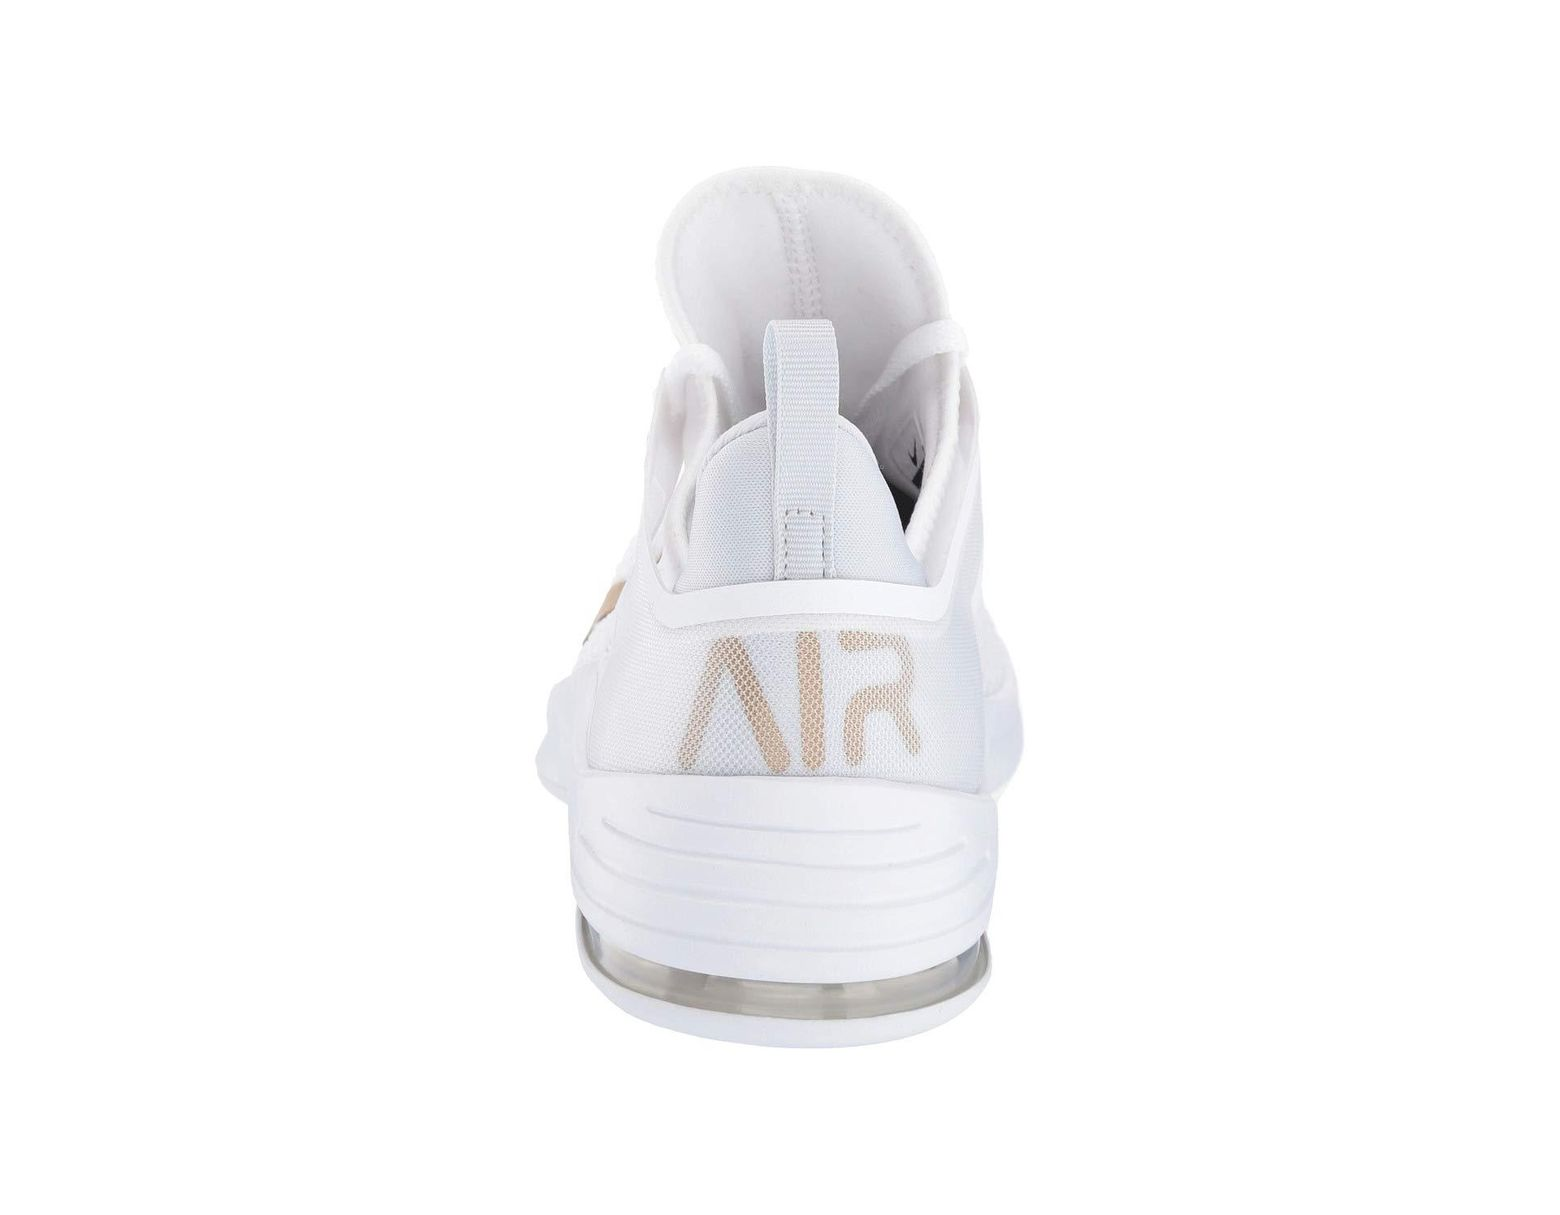 low priced 3ea91 99859 Nike Air Max Bella Tr 2 (white metallic Gold pure Platinum) Women s Cross  Training Shoes in White - Lyst